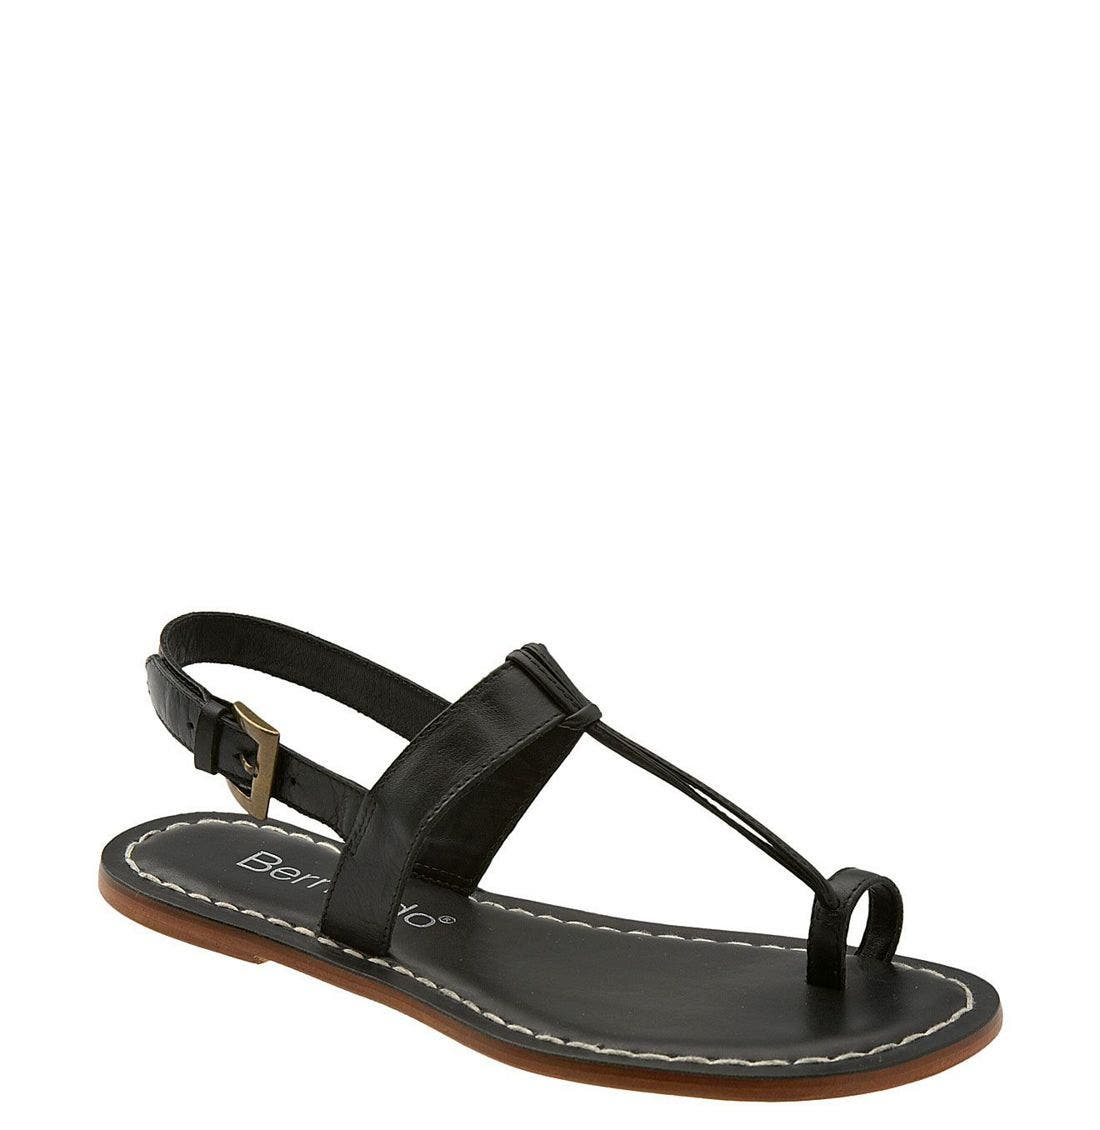 Main Image - Bernardo Maverick Leather Sandal (Women)